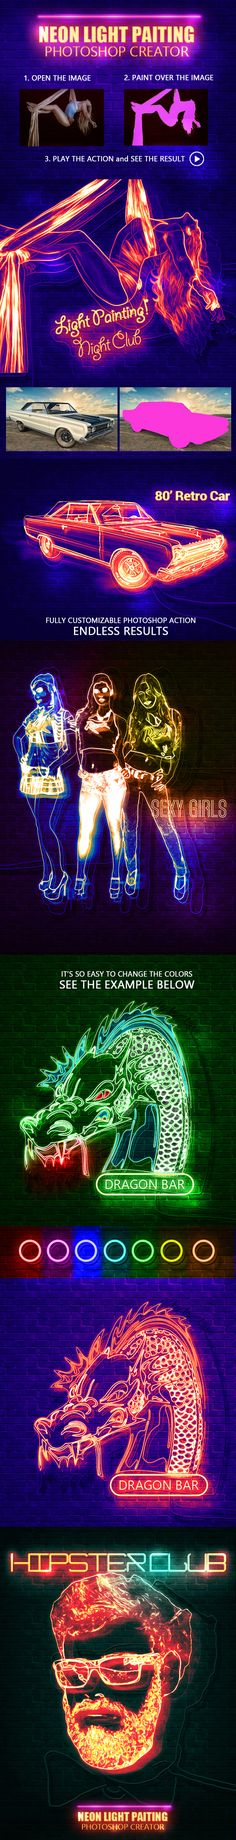 Neon Light Painting Photoshop Action. Download here…